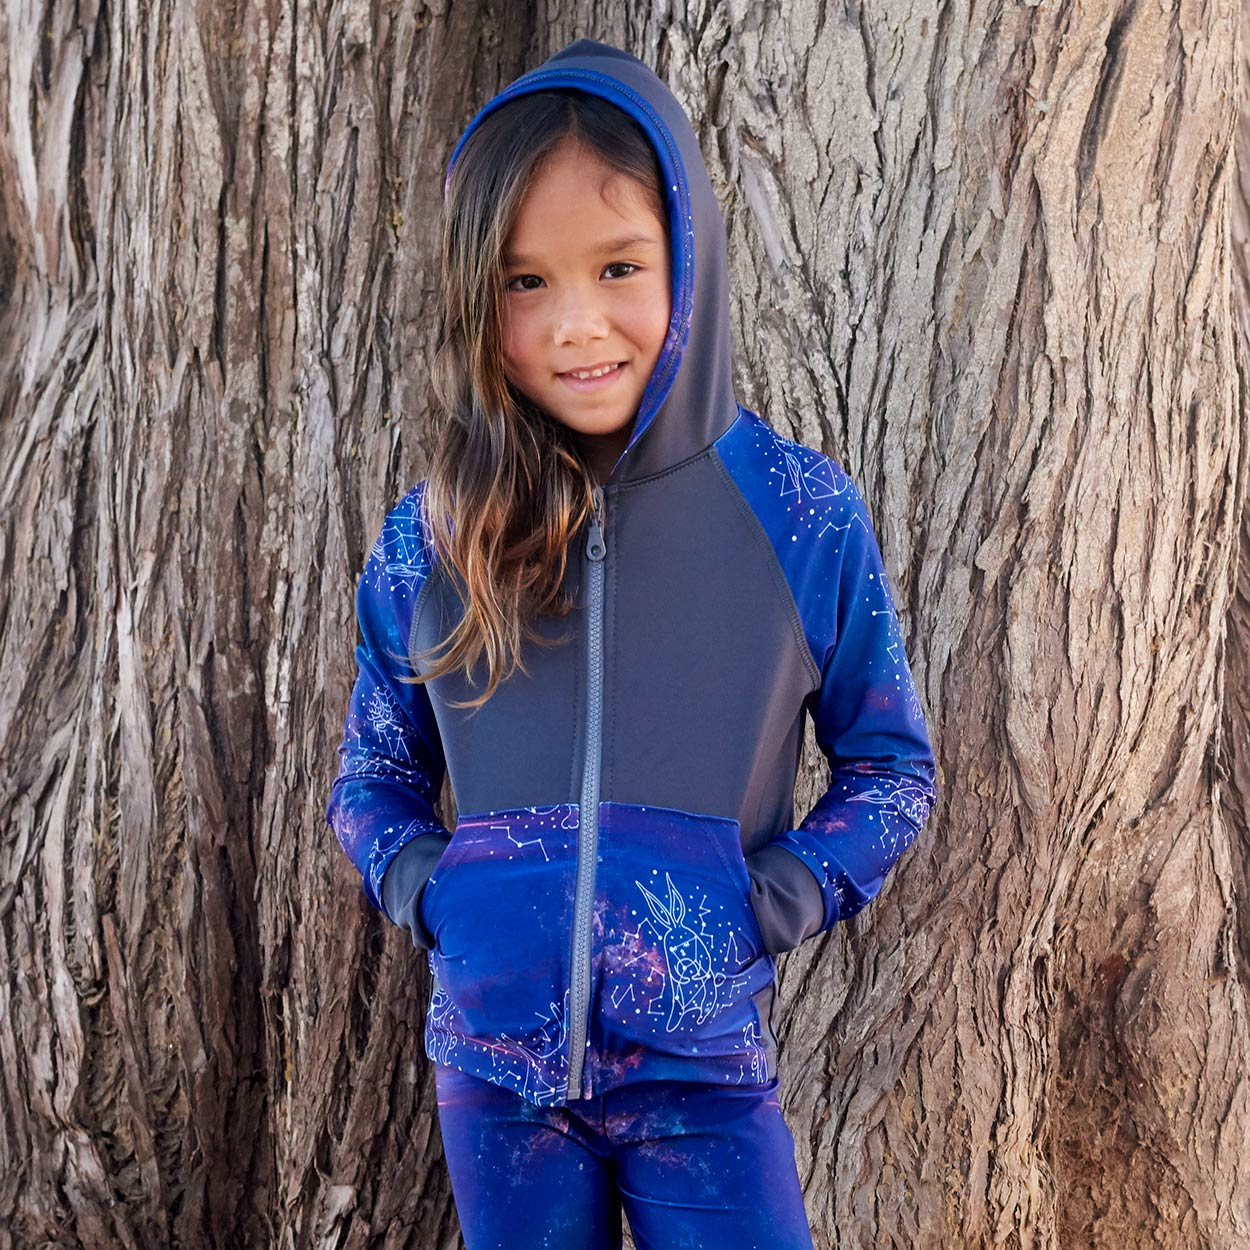 Constellations Zip Up Hoodie Upf50 Kids Size 2 12 Boys Girls Purple Grey Unisex Cosmos Smiling Girl With Hands In Her Pockets Sunpoplife